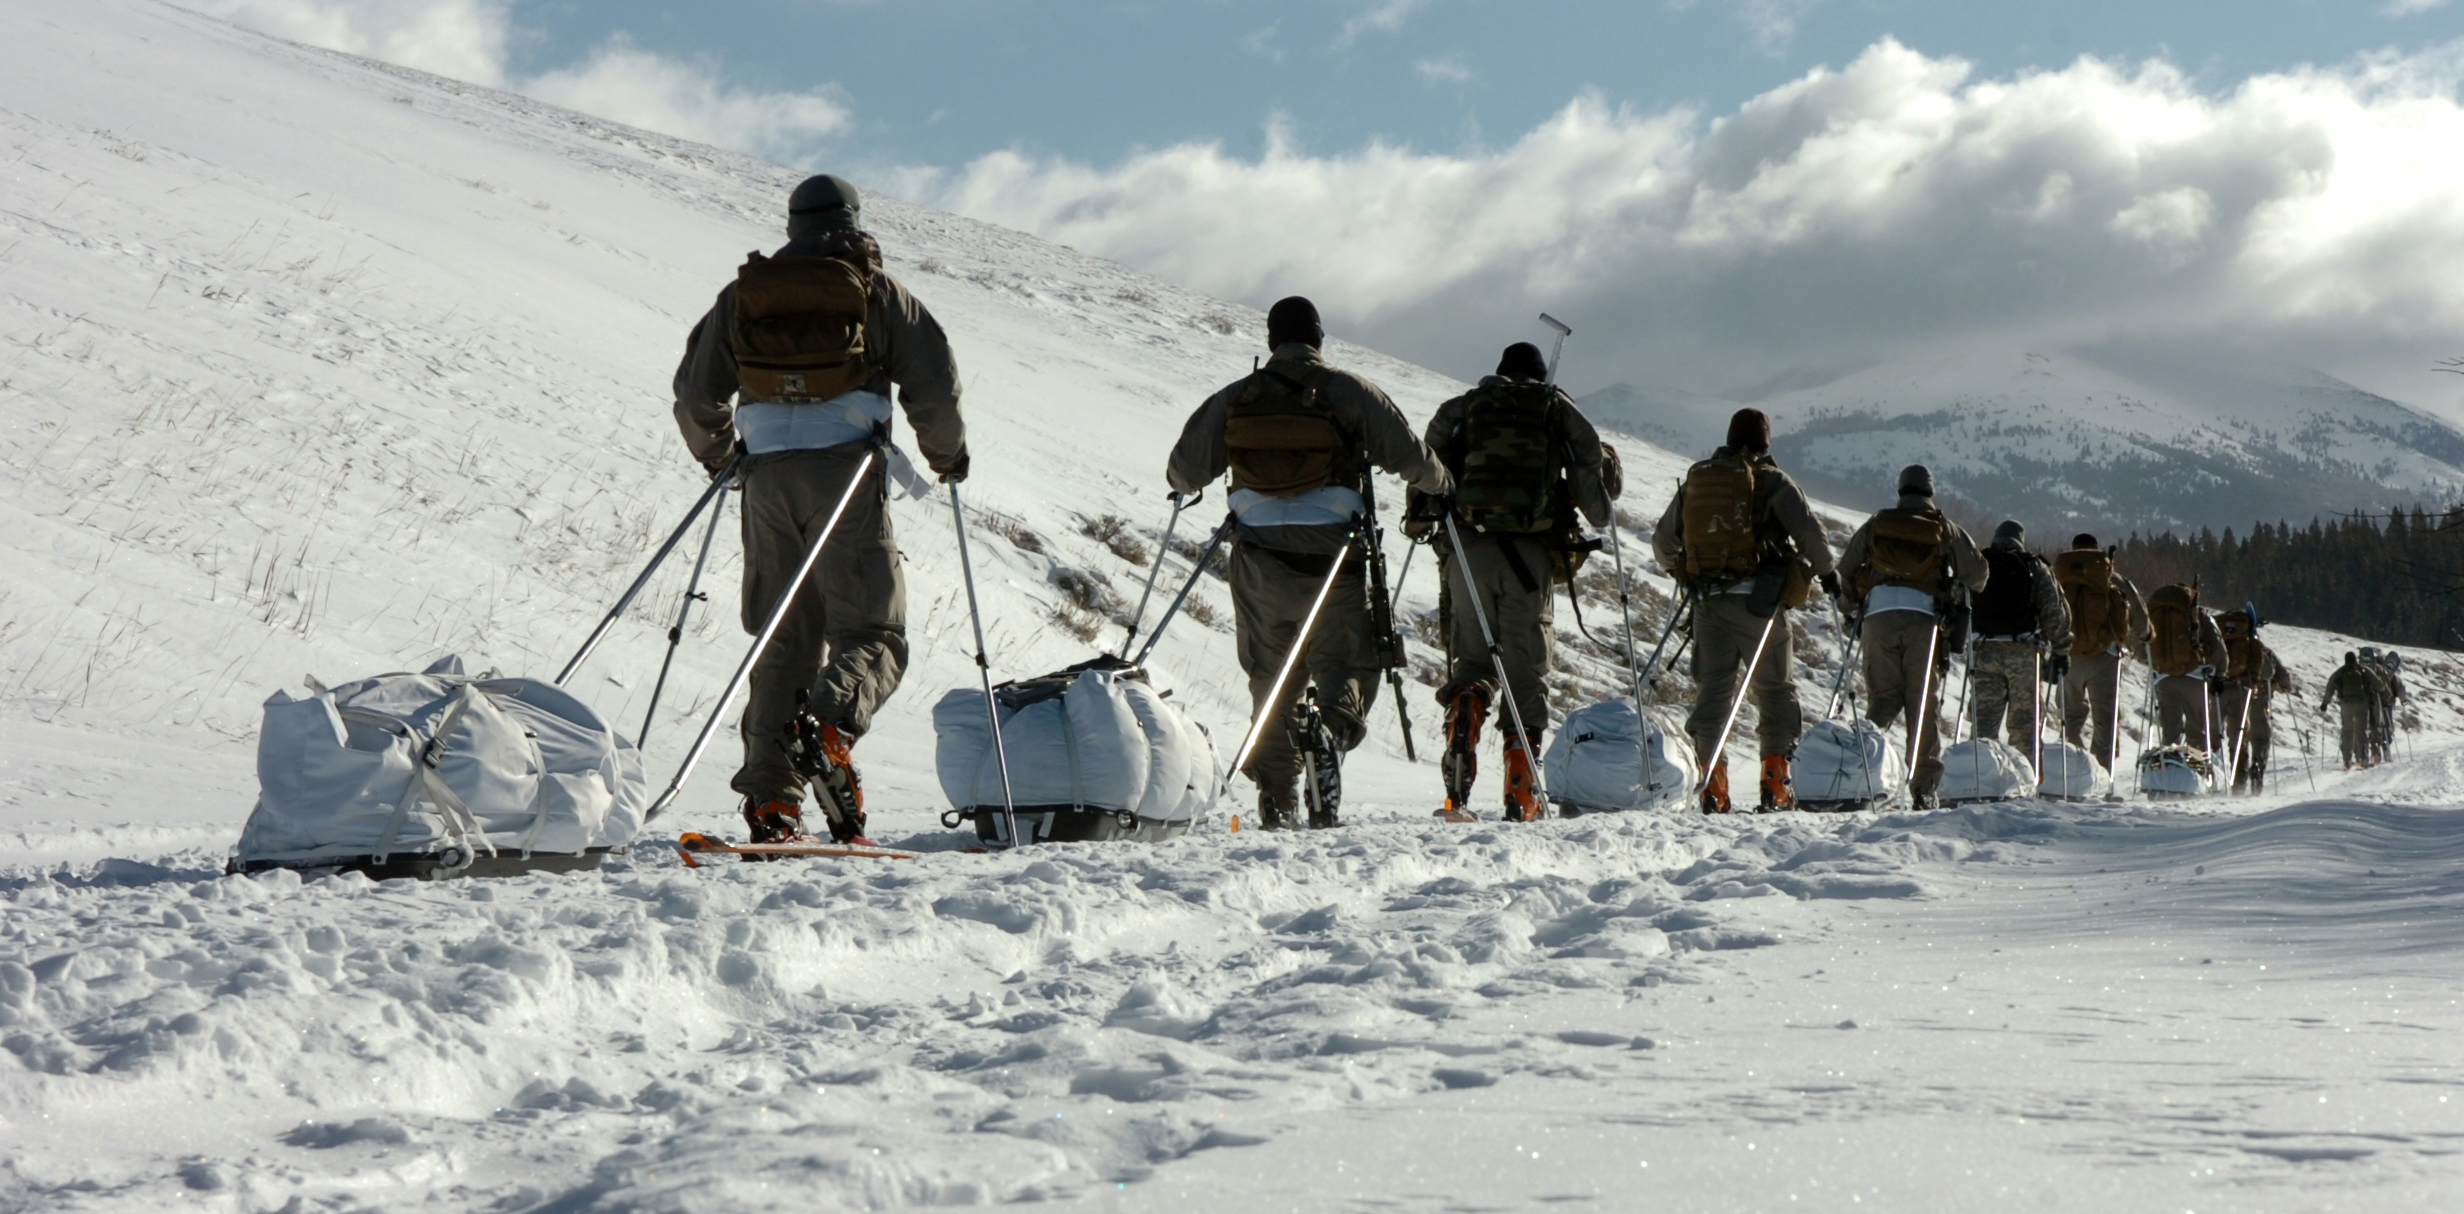 US Army Special Forces soldiers conduct cold weather training Making No EXCUSES